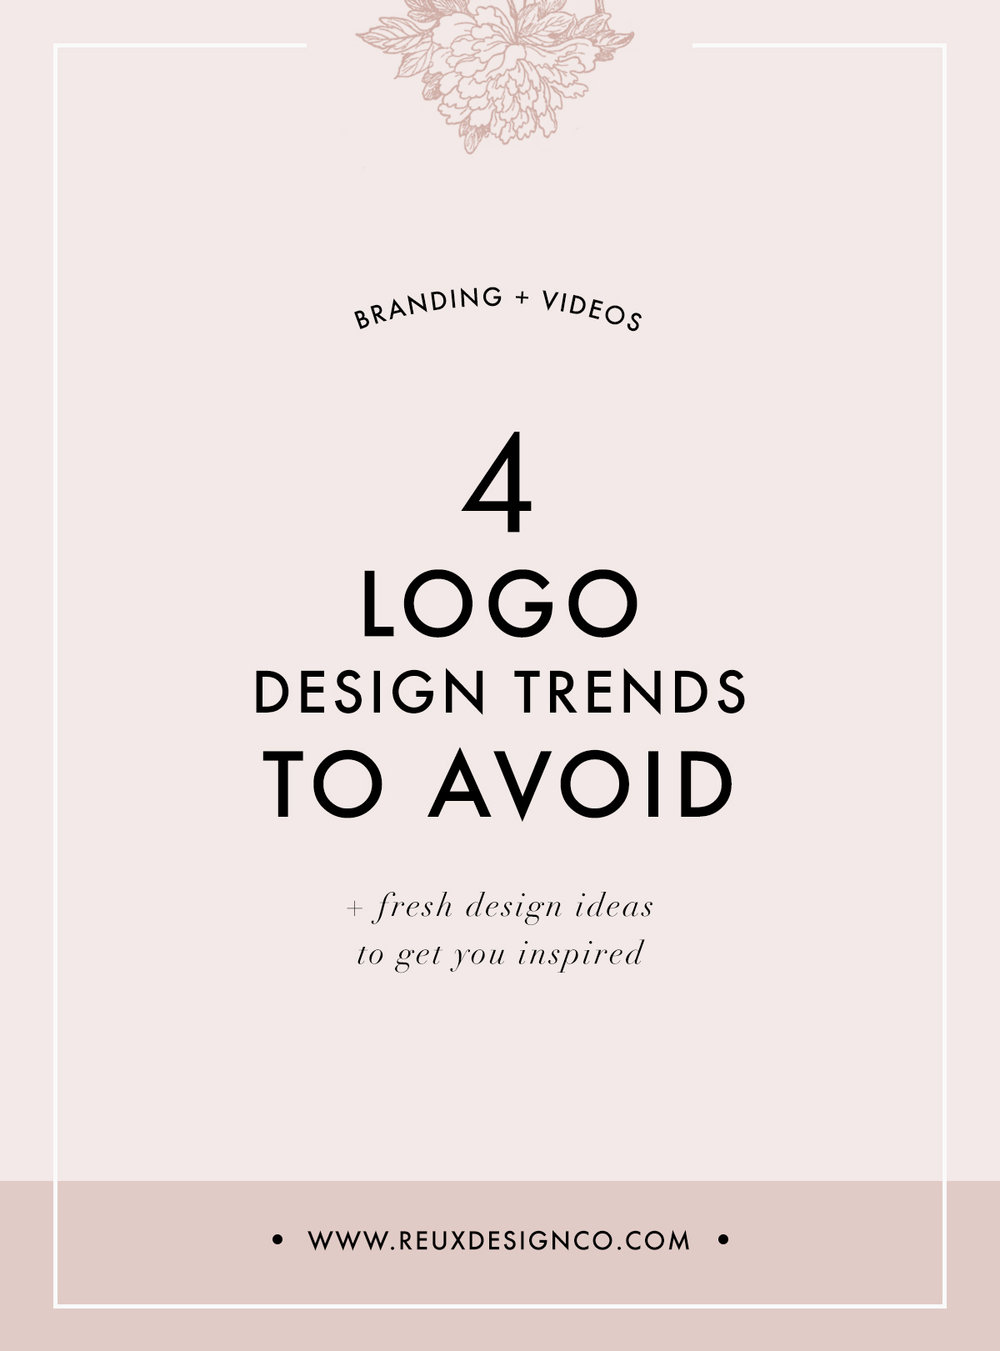 Logo design trends you should avoid if you're DIY-ing your branding | Reux Design Co.